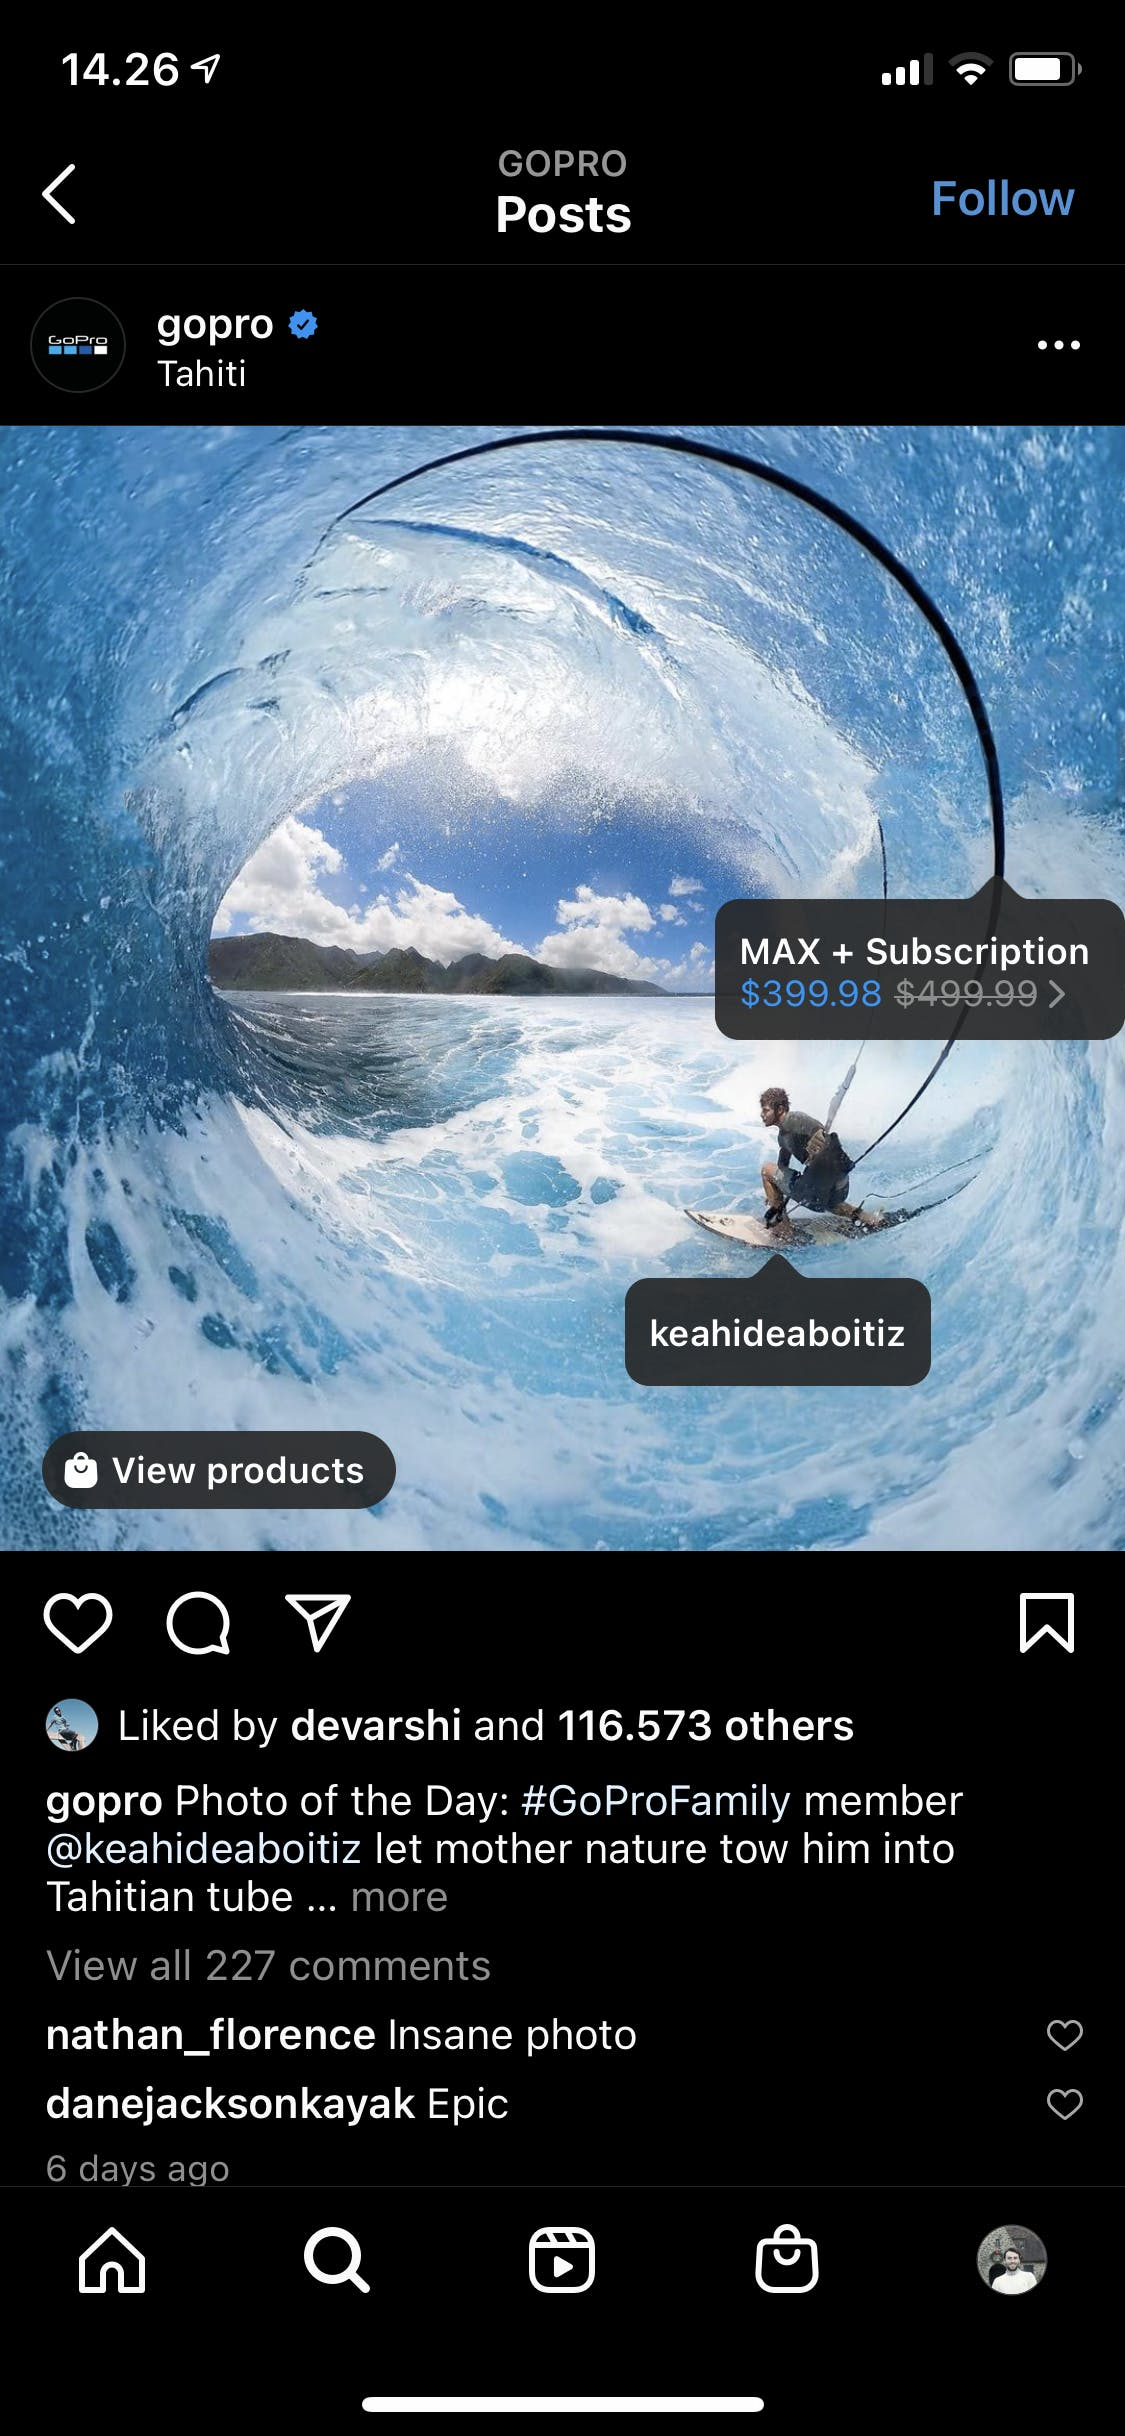 an example of a shoppable post on Instagram from GoPro